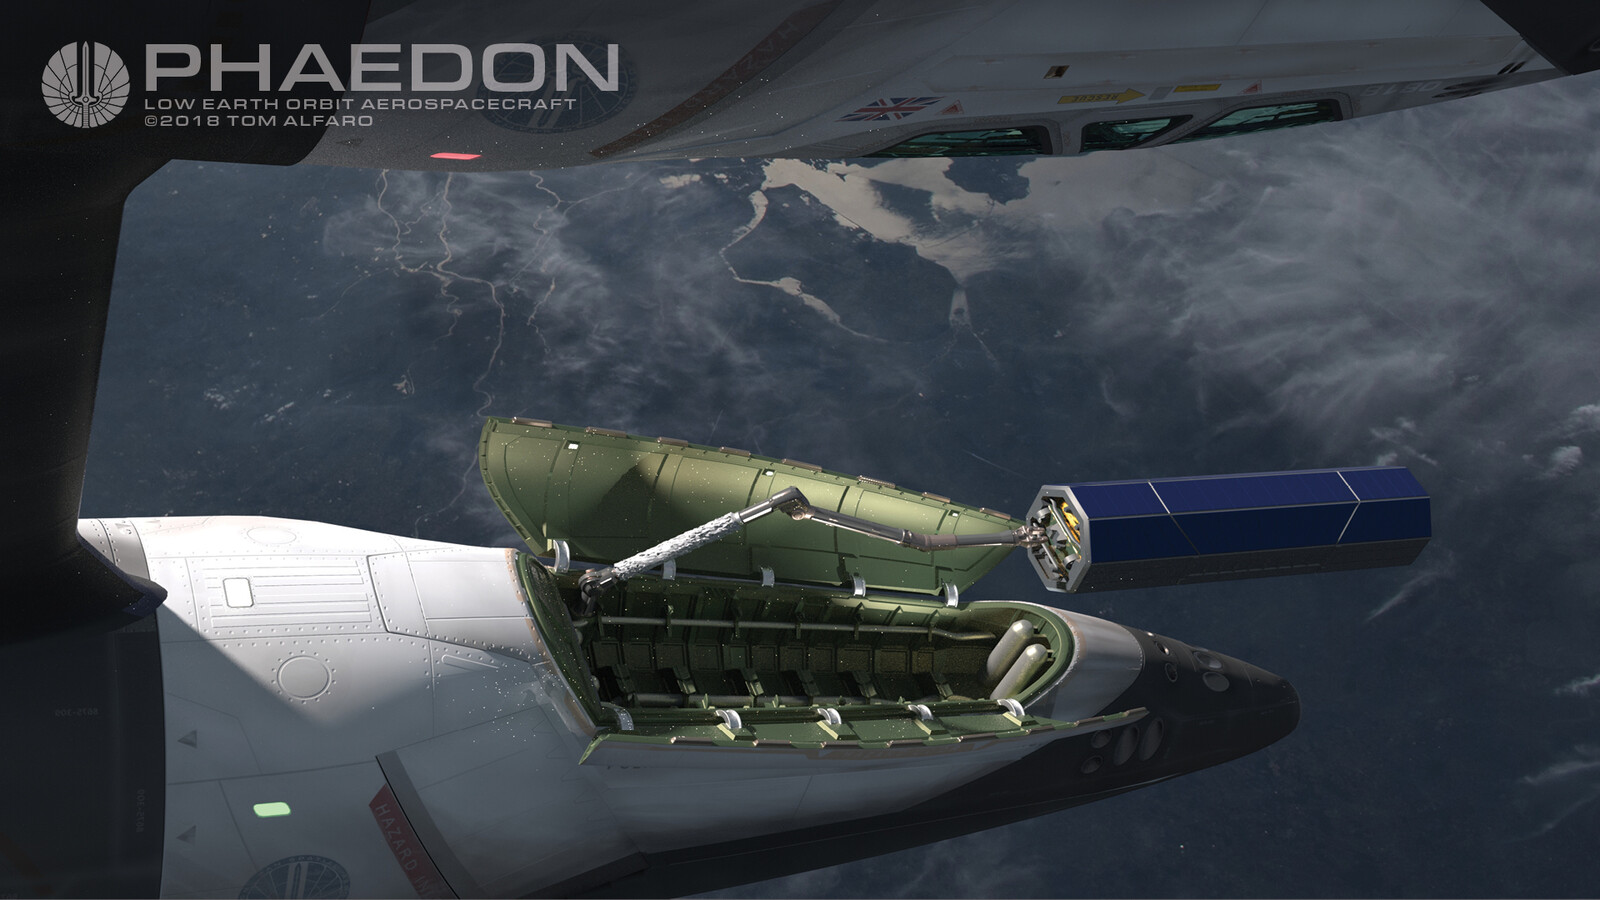 Phaedon deploys satellite